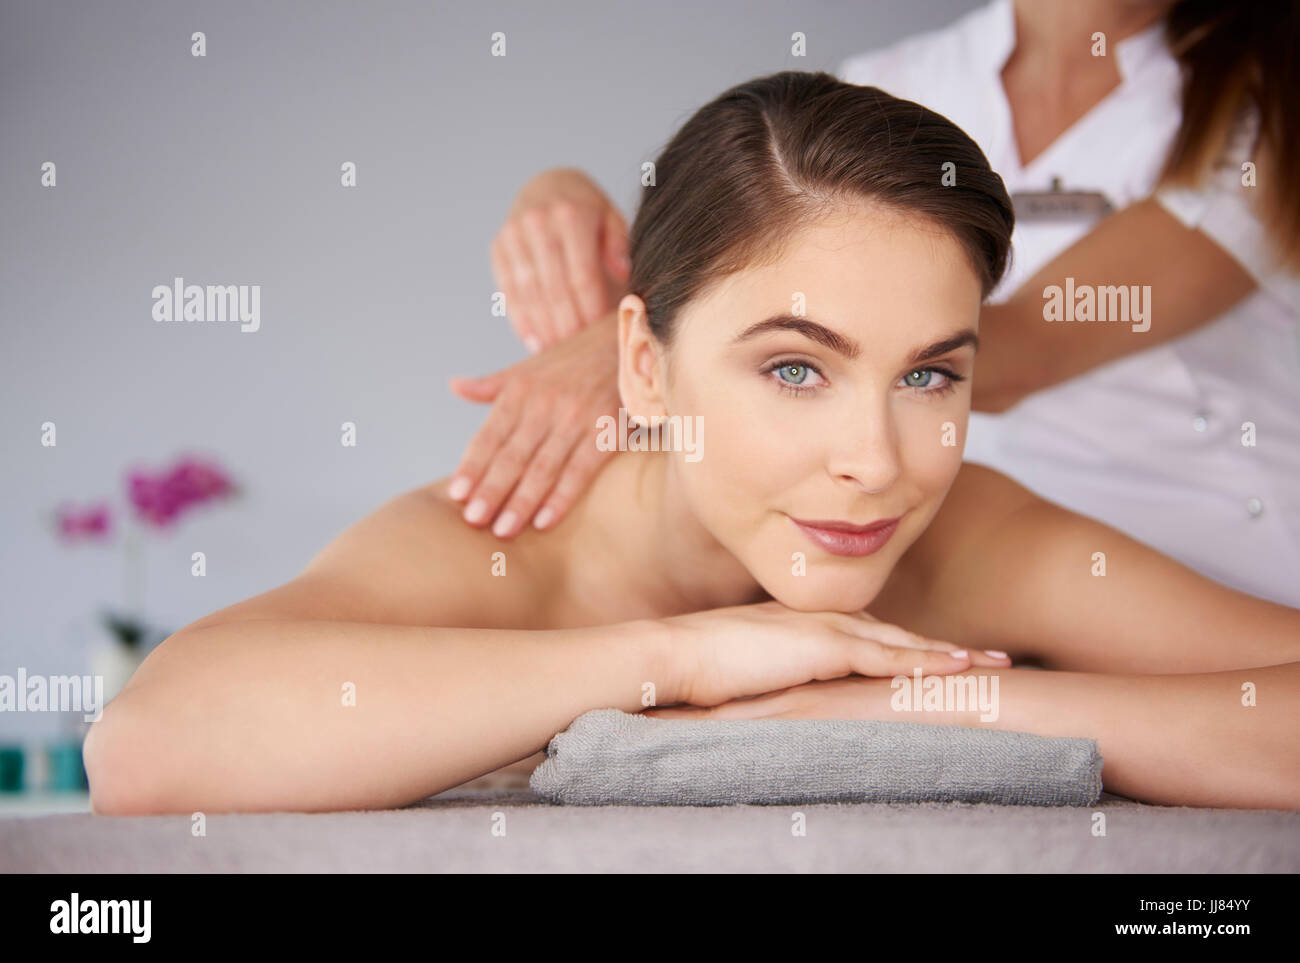 Portrait of natural woman at the spa Stock Photo